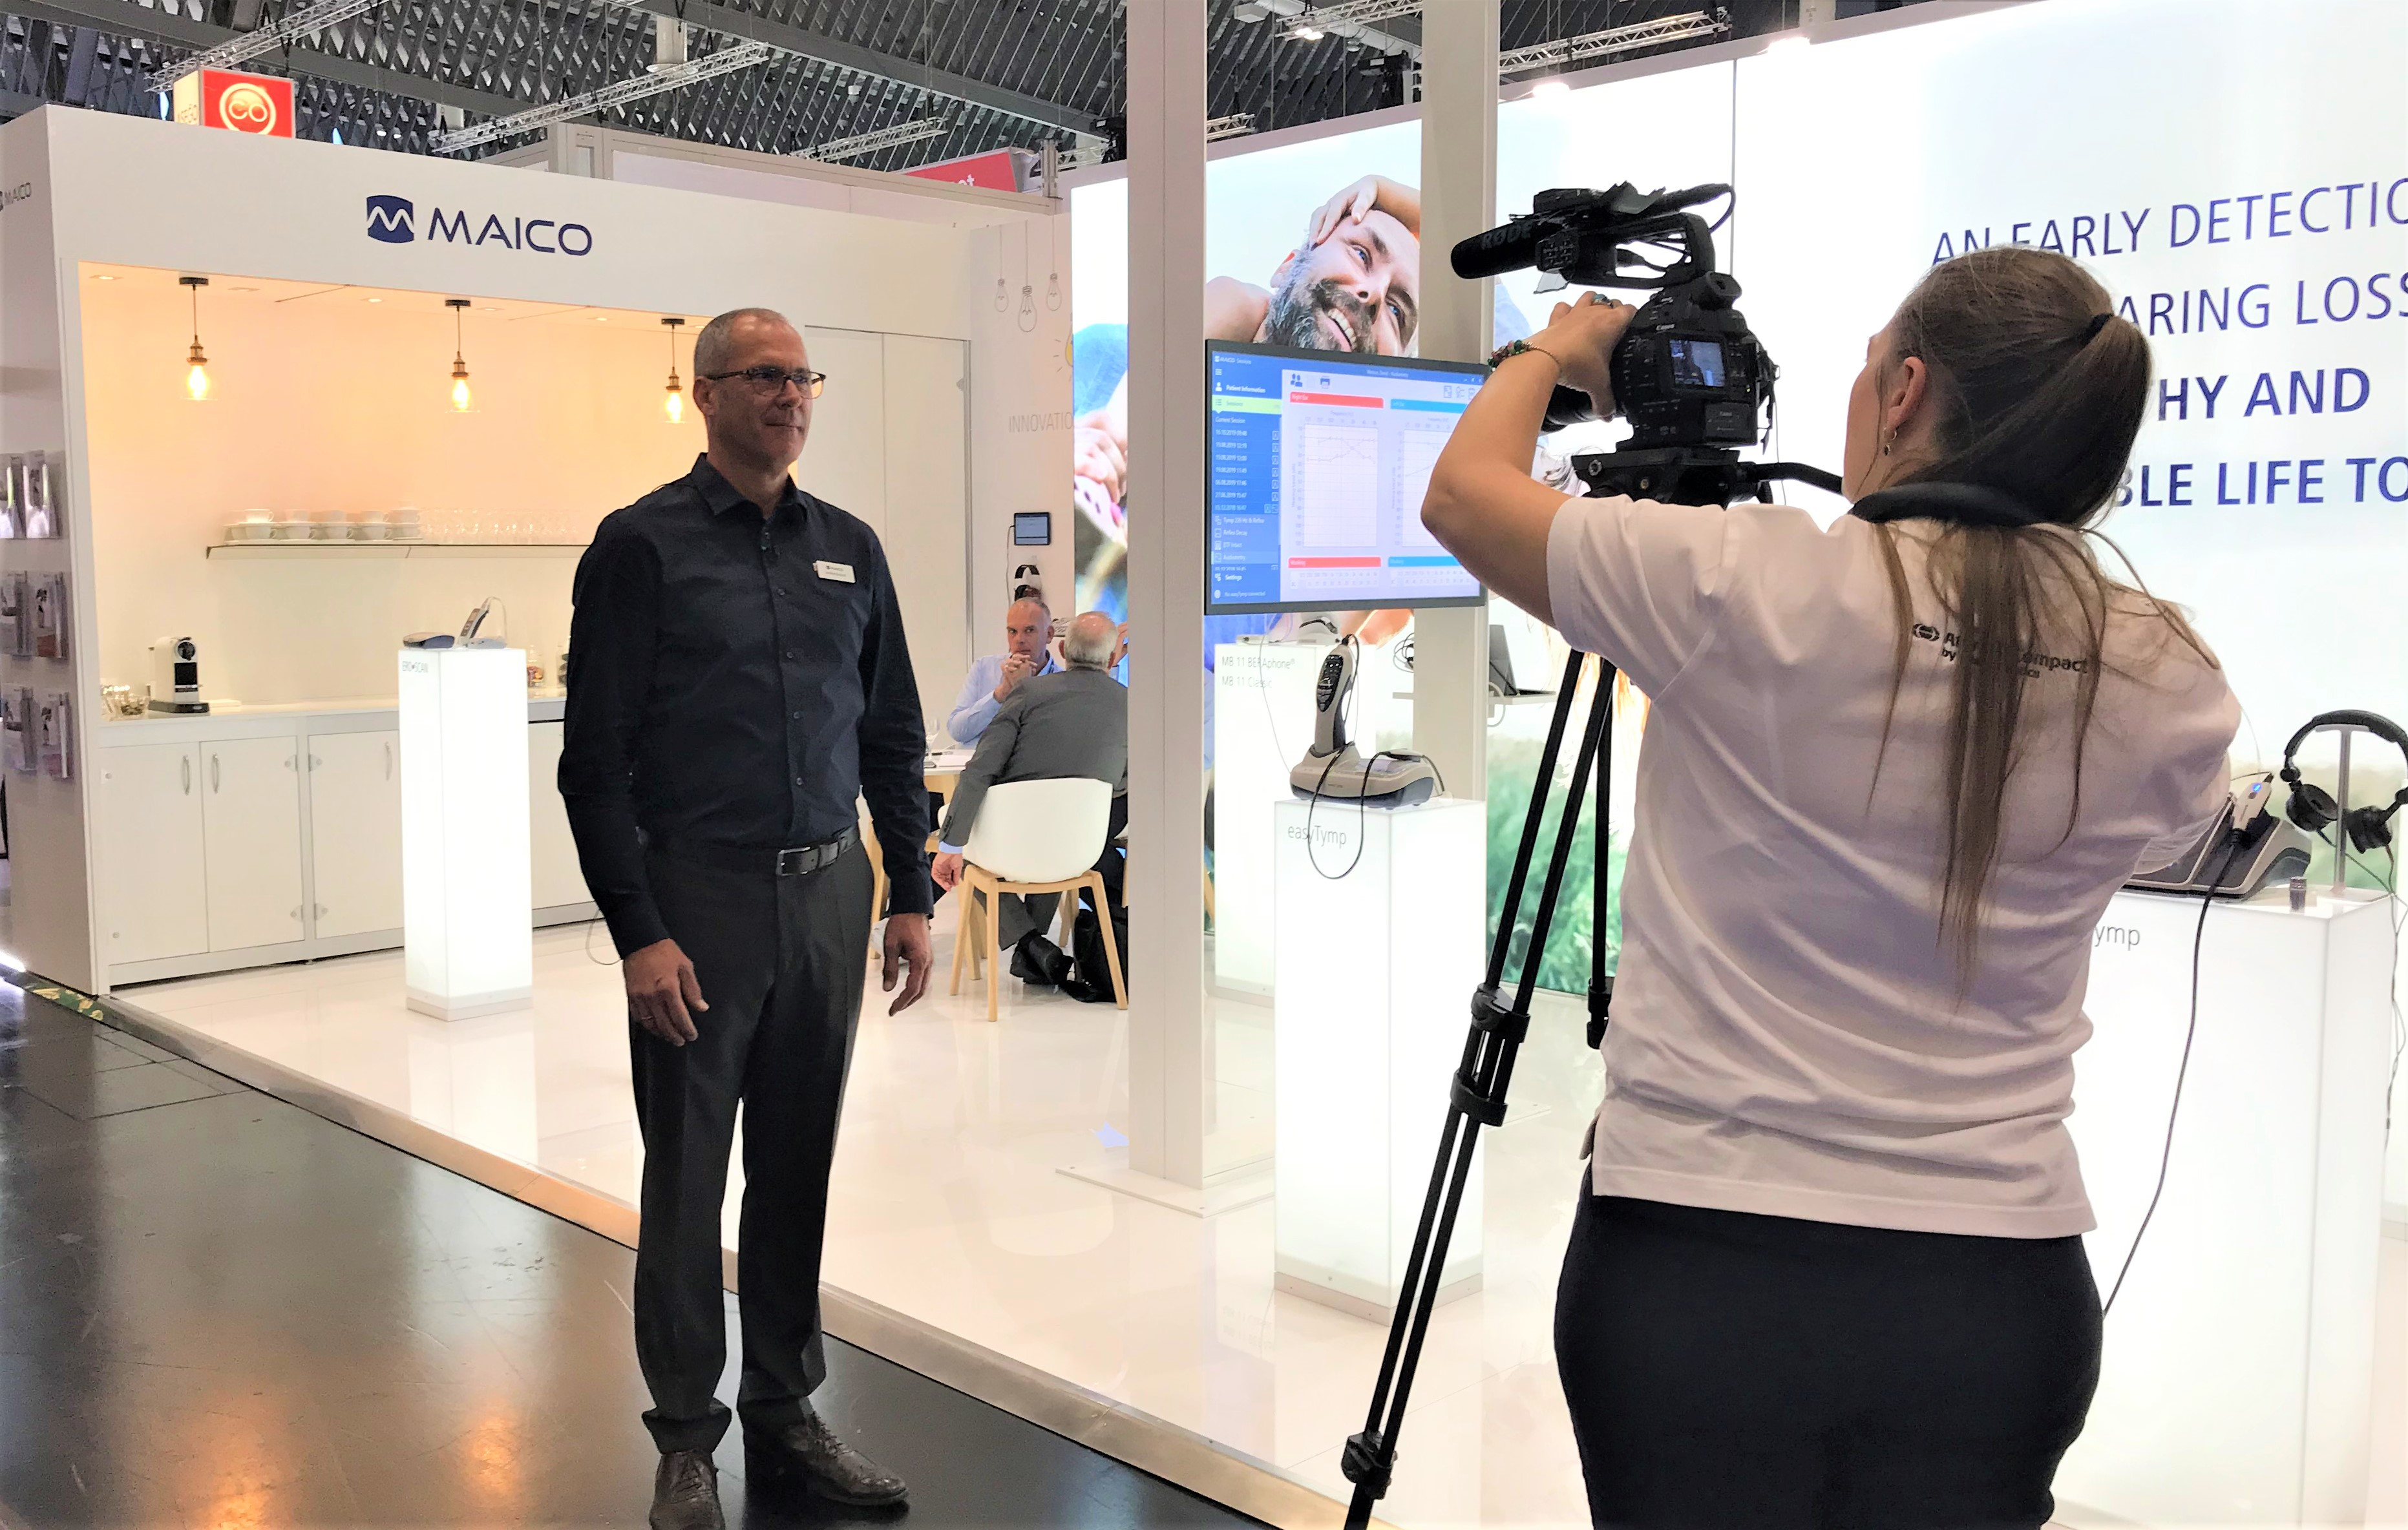 ask-the-expert--maico-ceo-andreas-kurzbuch-in-interview-at-euha-2019